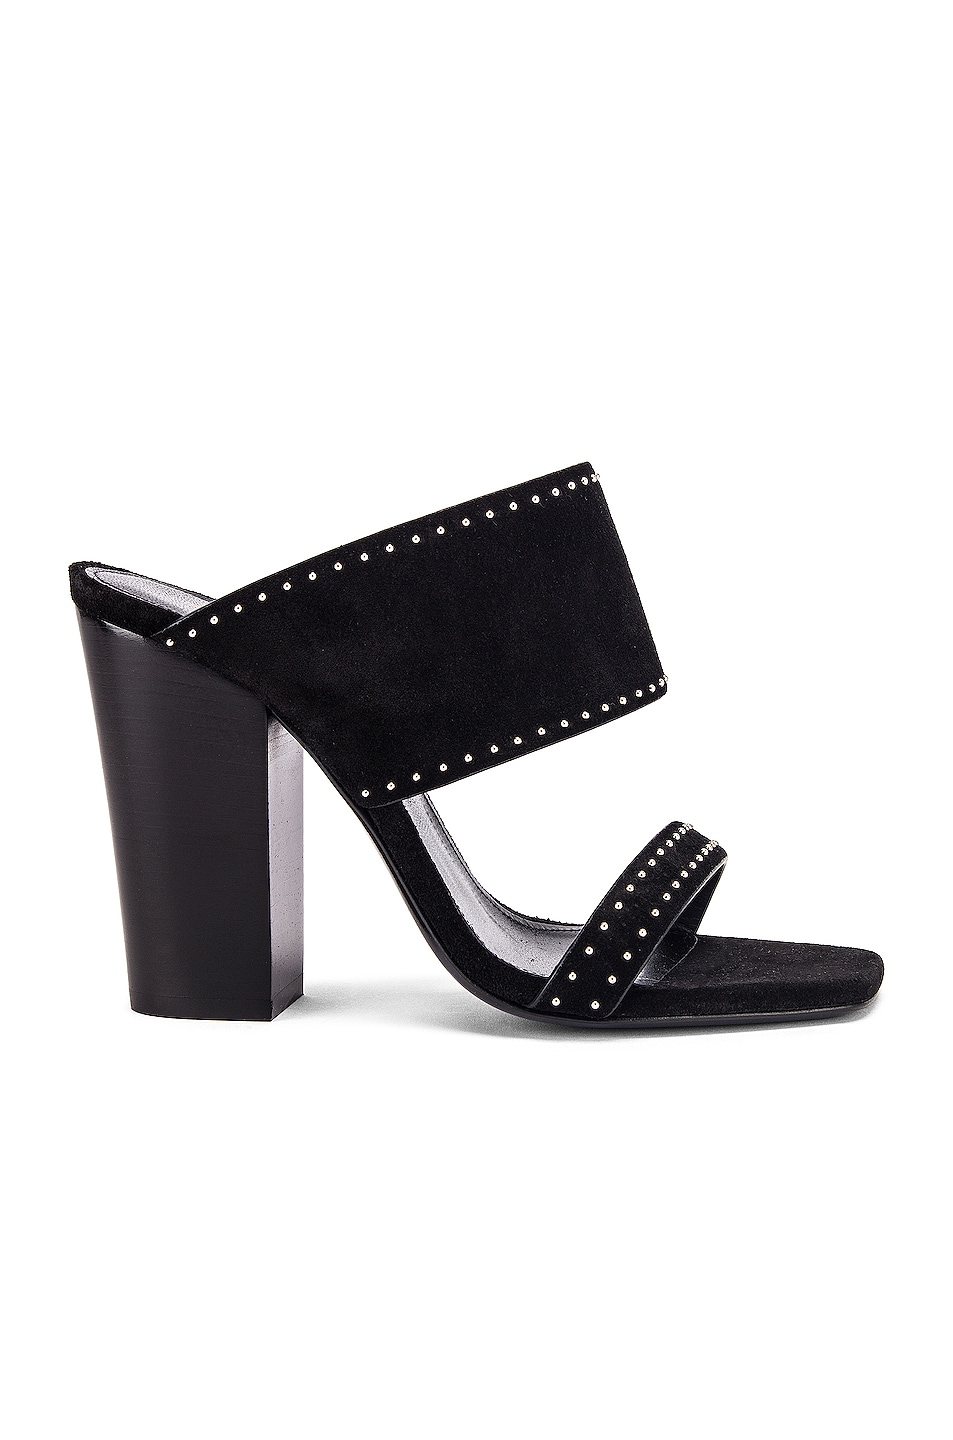 Image 1 of Saint Laurent Oak Stud Sandals in Black